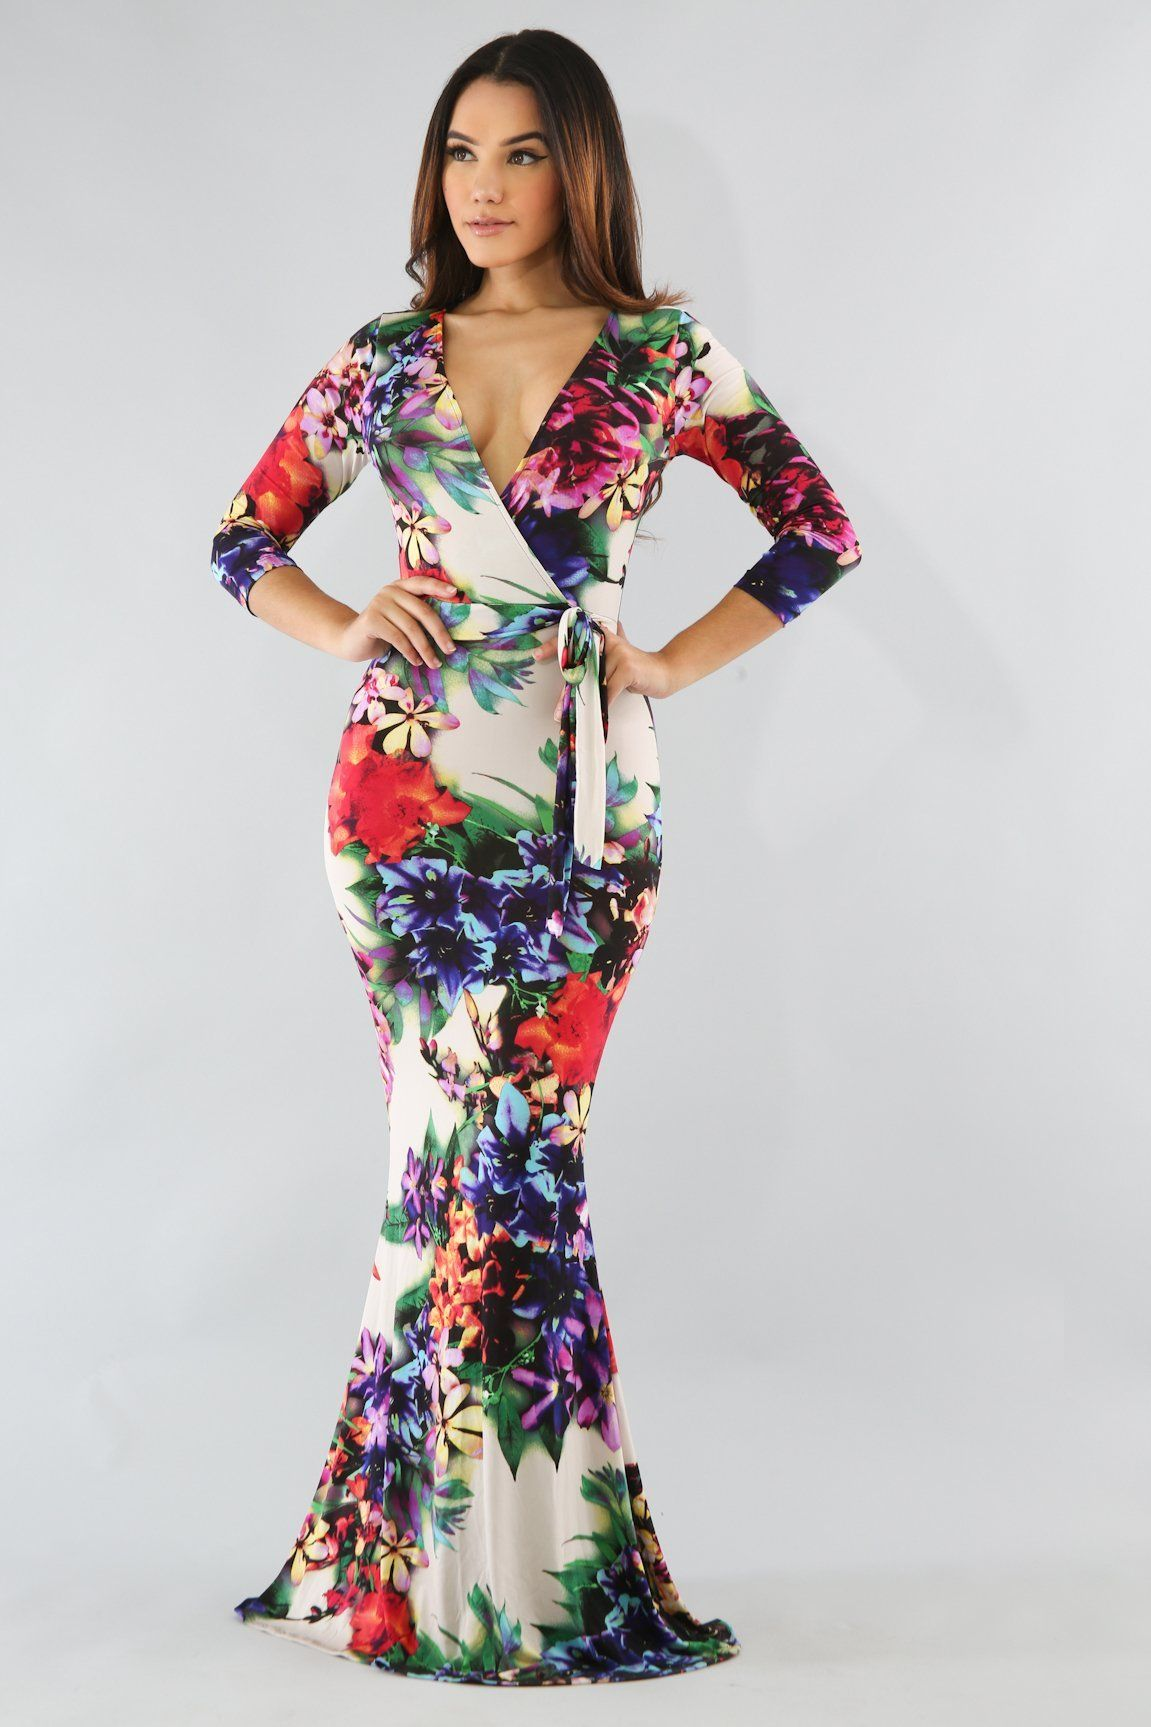 c8e83691cee2 WRAP STYLE FLORAL MERMAID MAXI DRESS - MULTI | Products | Dresses ...